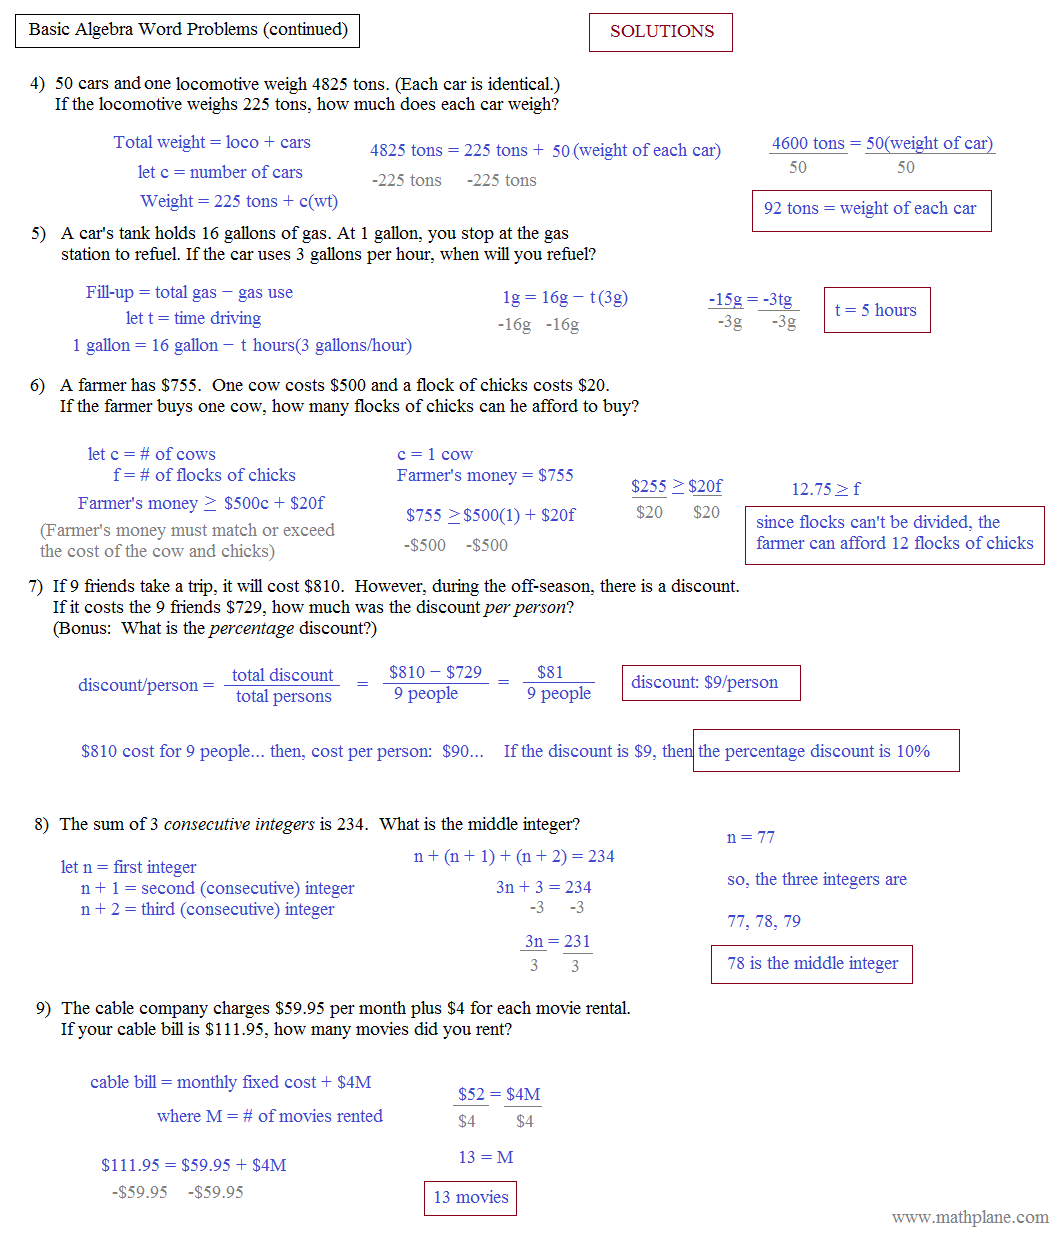 Worksheets Linear Programming Word Problems Worksheet math plane algebra word problems basic 2 solutions